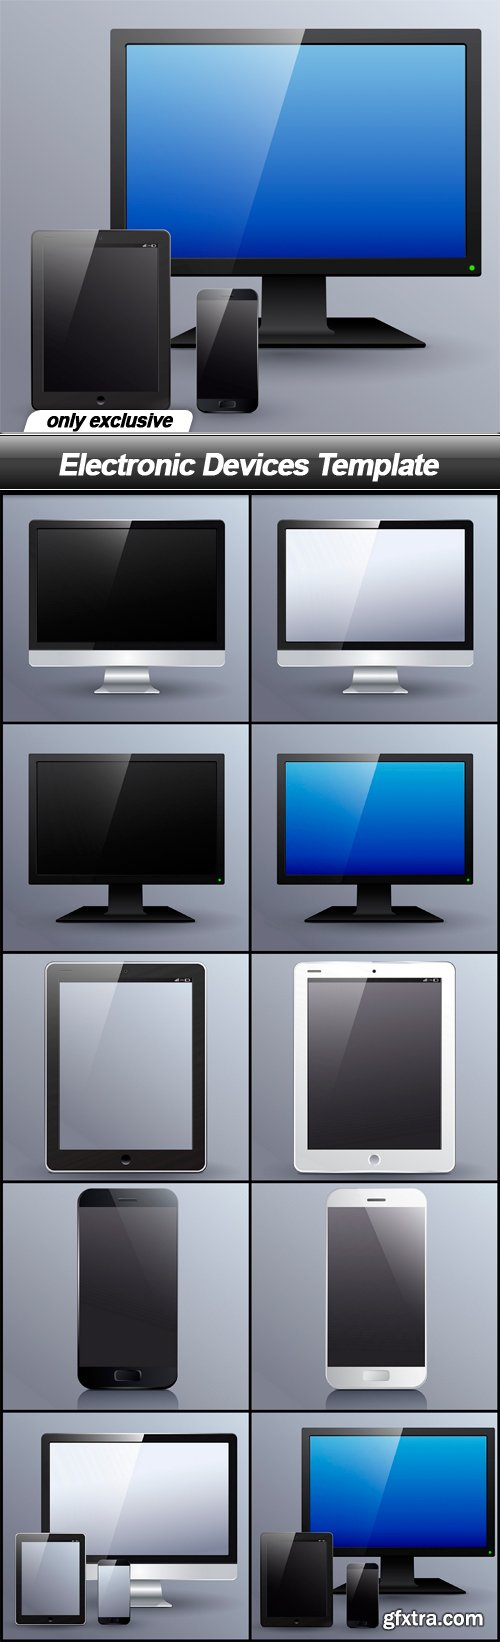 Electronic Devices Template - 10 EPS